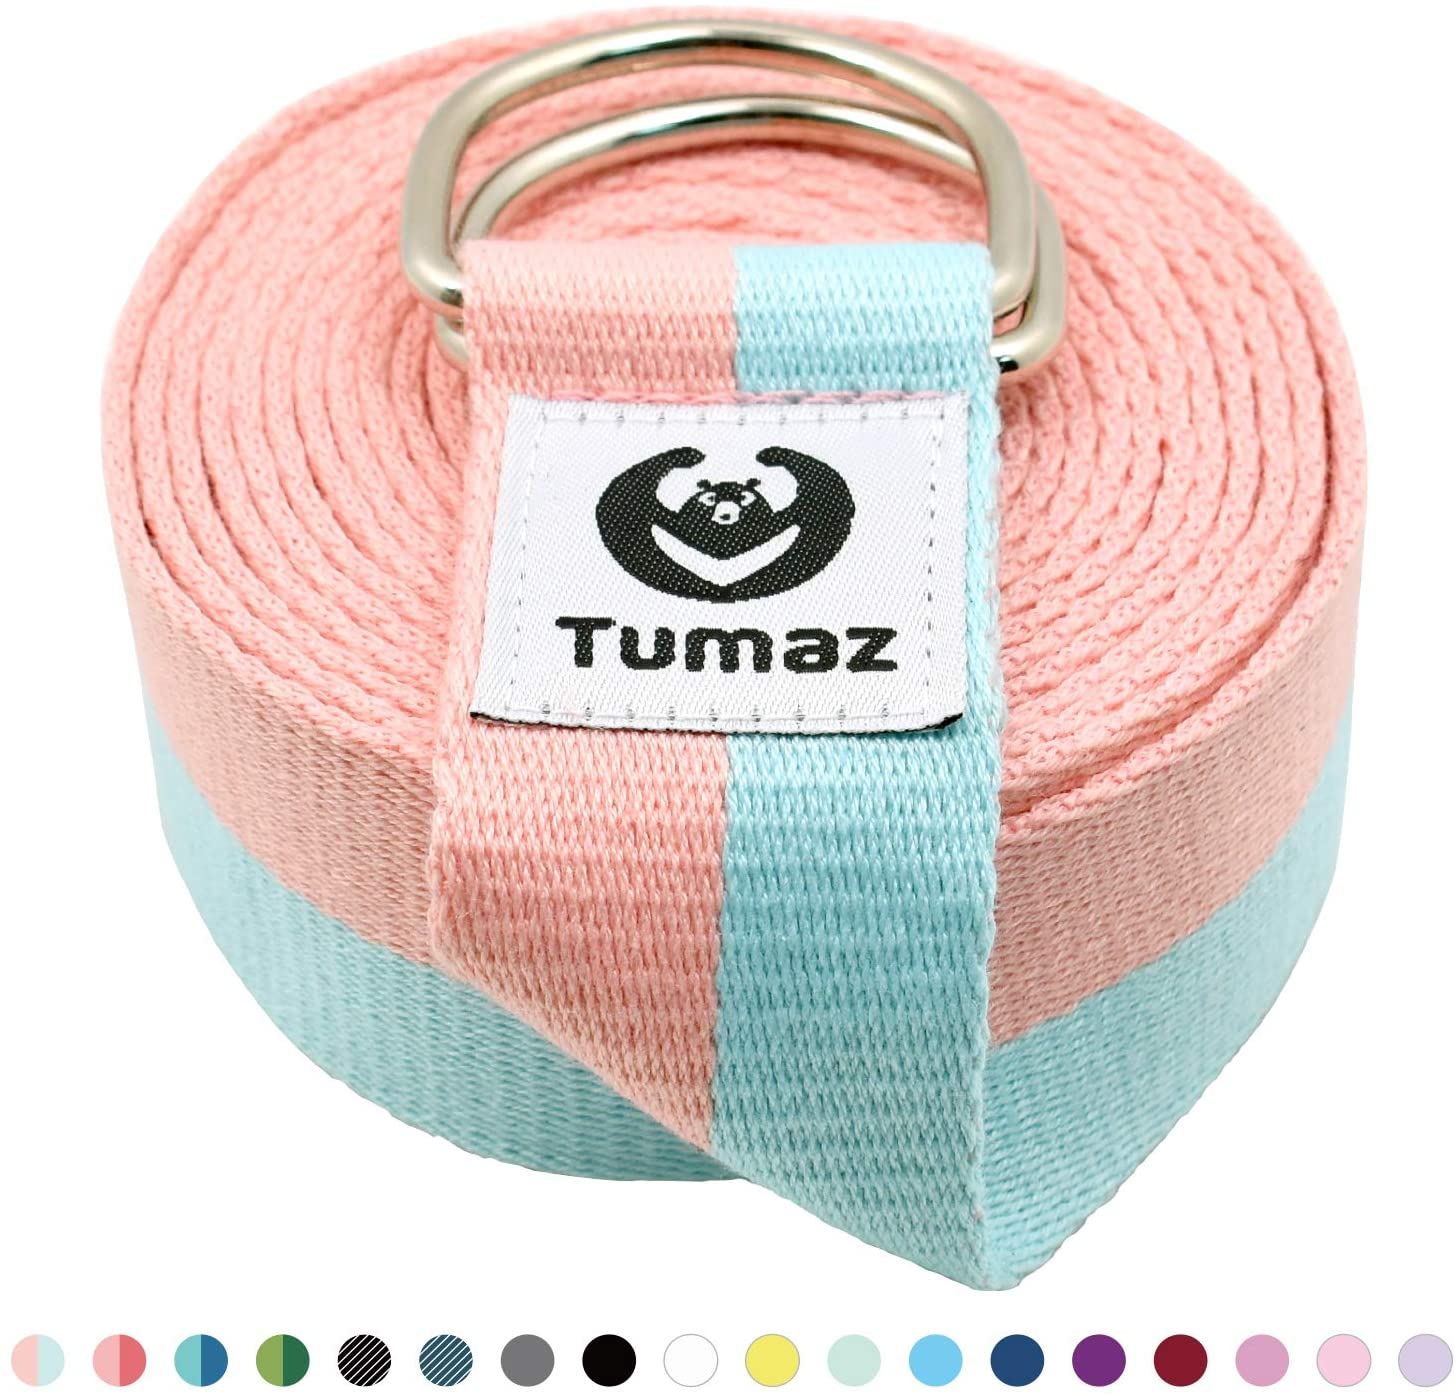 Yoga Strap/Stretch Bands with Extra Safe Adjustable D-Ring Buckle, Durable and Comfy Delicate Texture - Best for Daily Stretching, Physical Therapy, Fitness